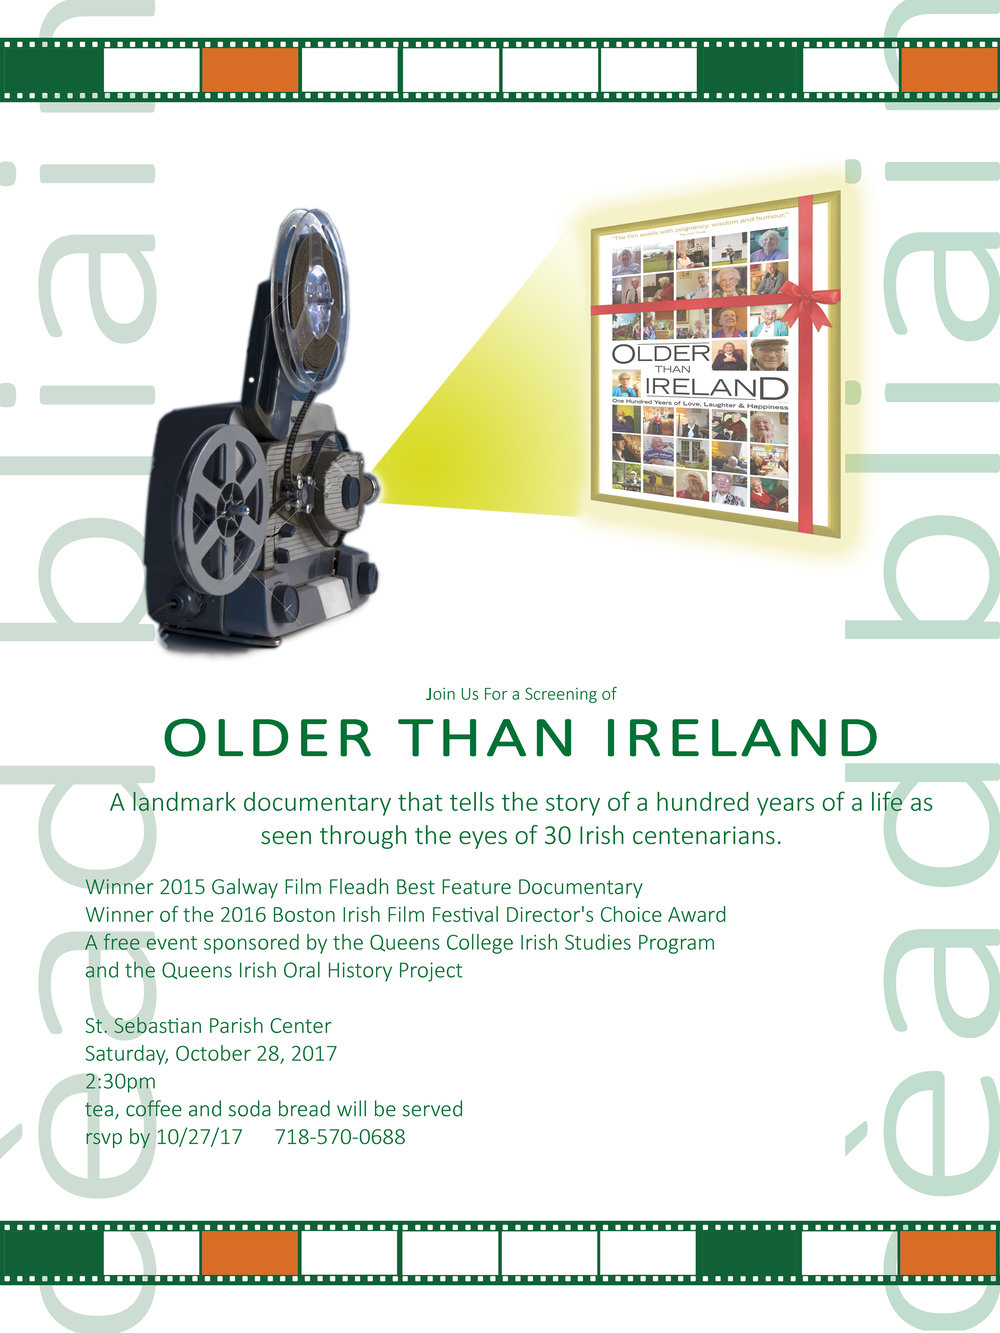 Older Than Ireland poster.jpg